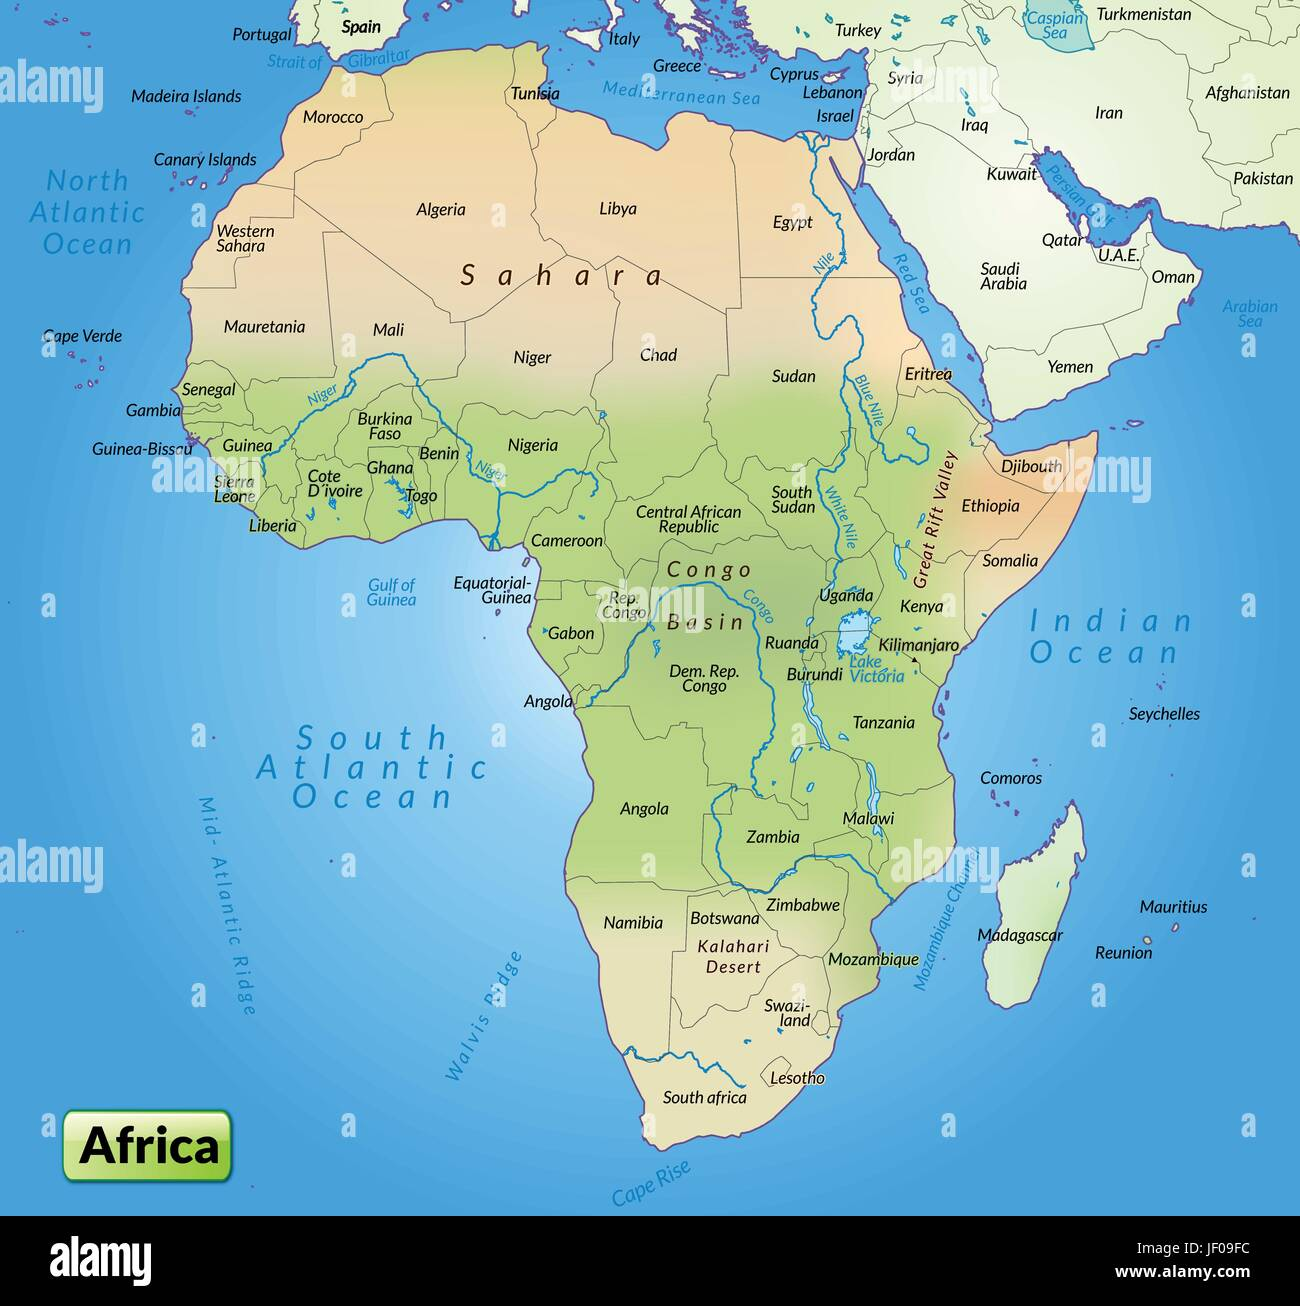 card, atlas, map of the world, map, africa, border, card, synopsis ...